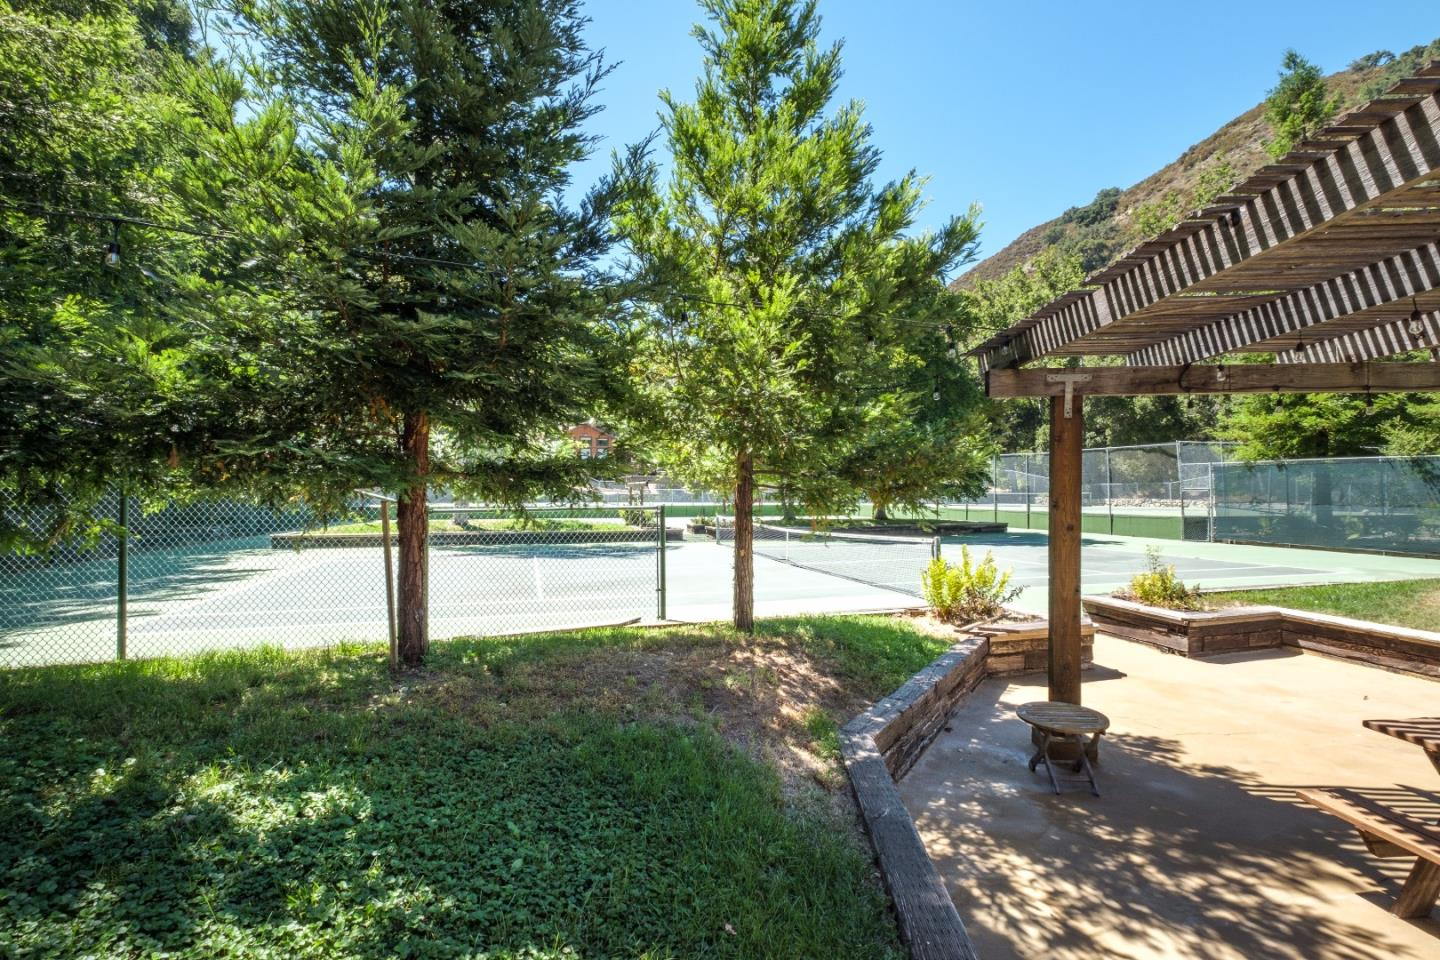 Additional photo for property listing at 36865 Dormody Road  Carmel, California 93923 United States